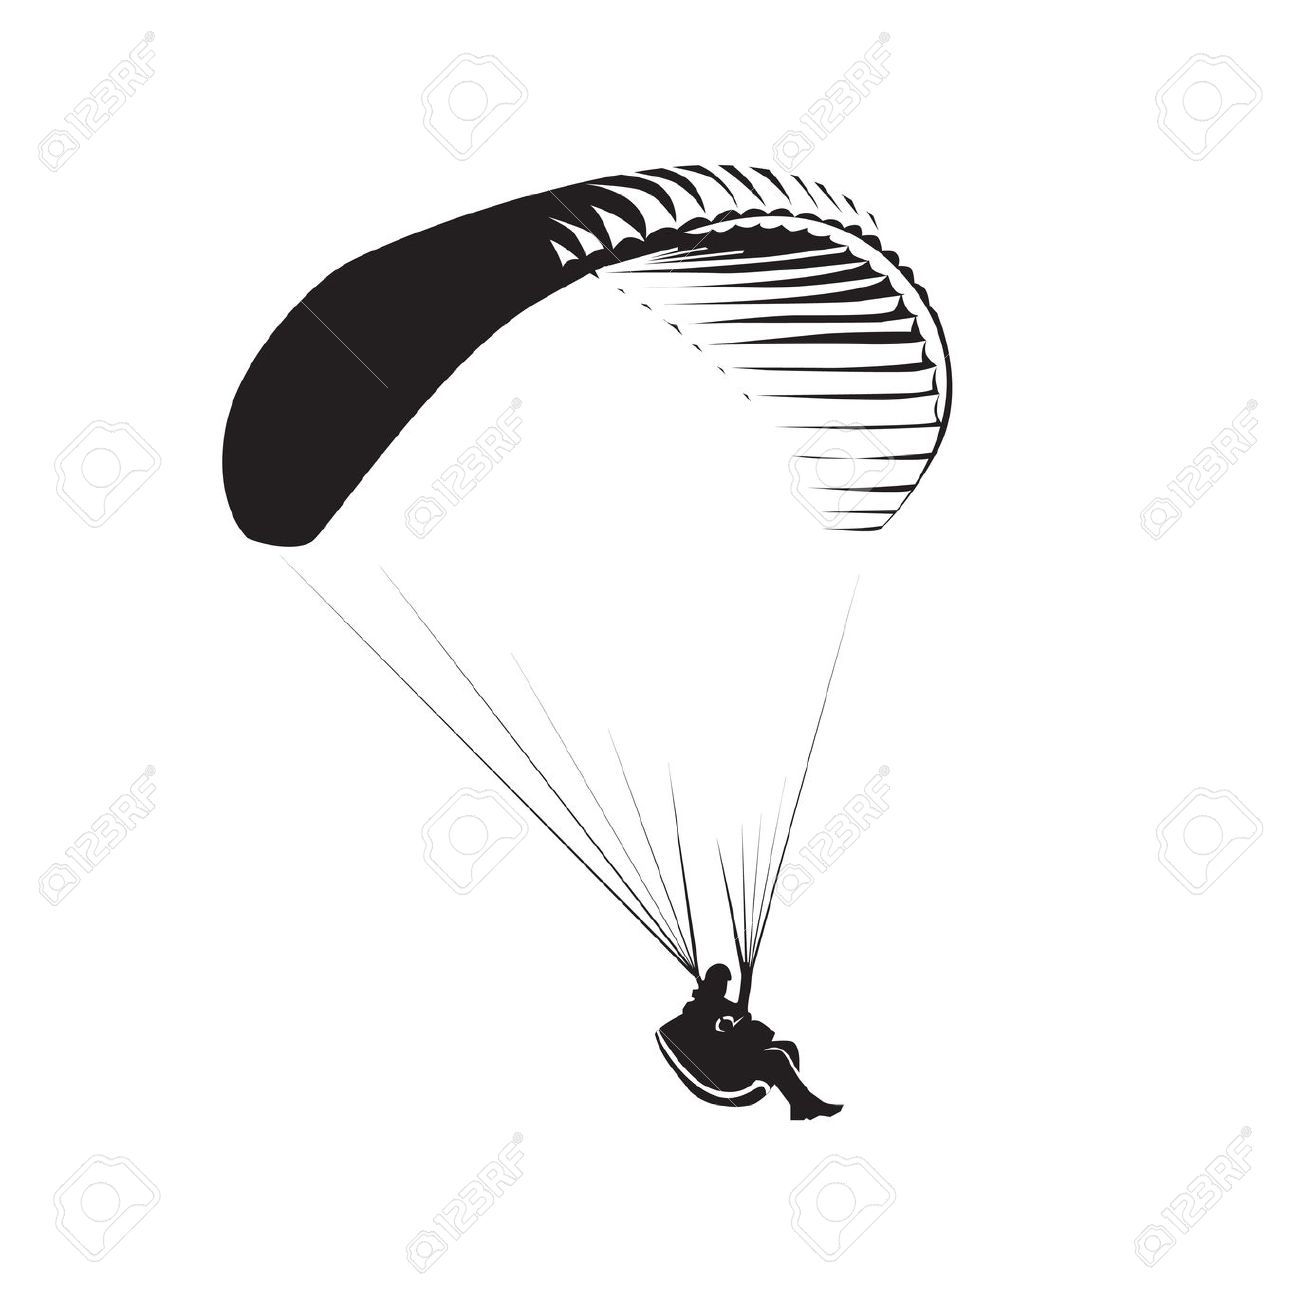 1,210 Paragliding Stock Vector Illustration And Royalty Free.